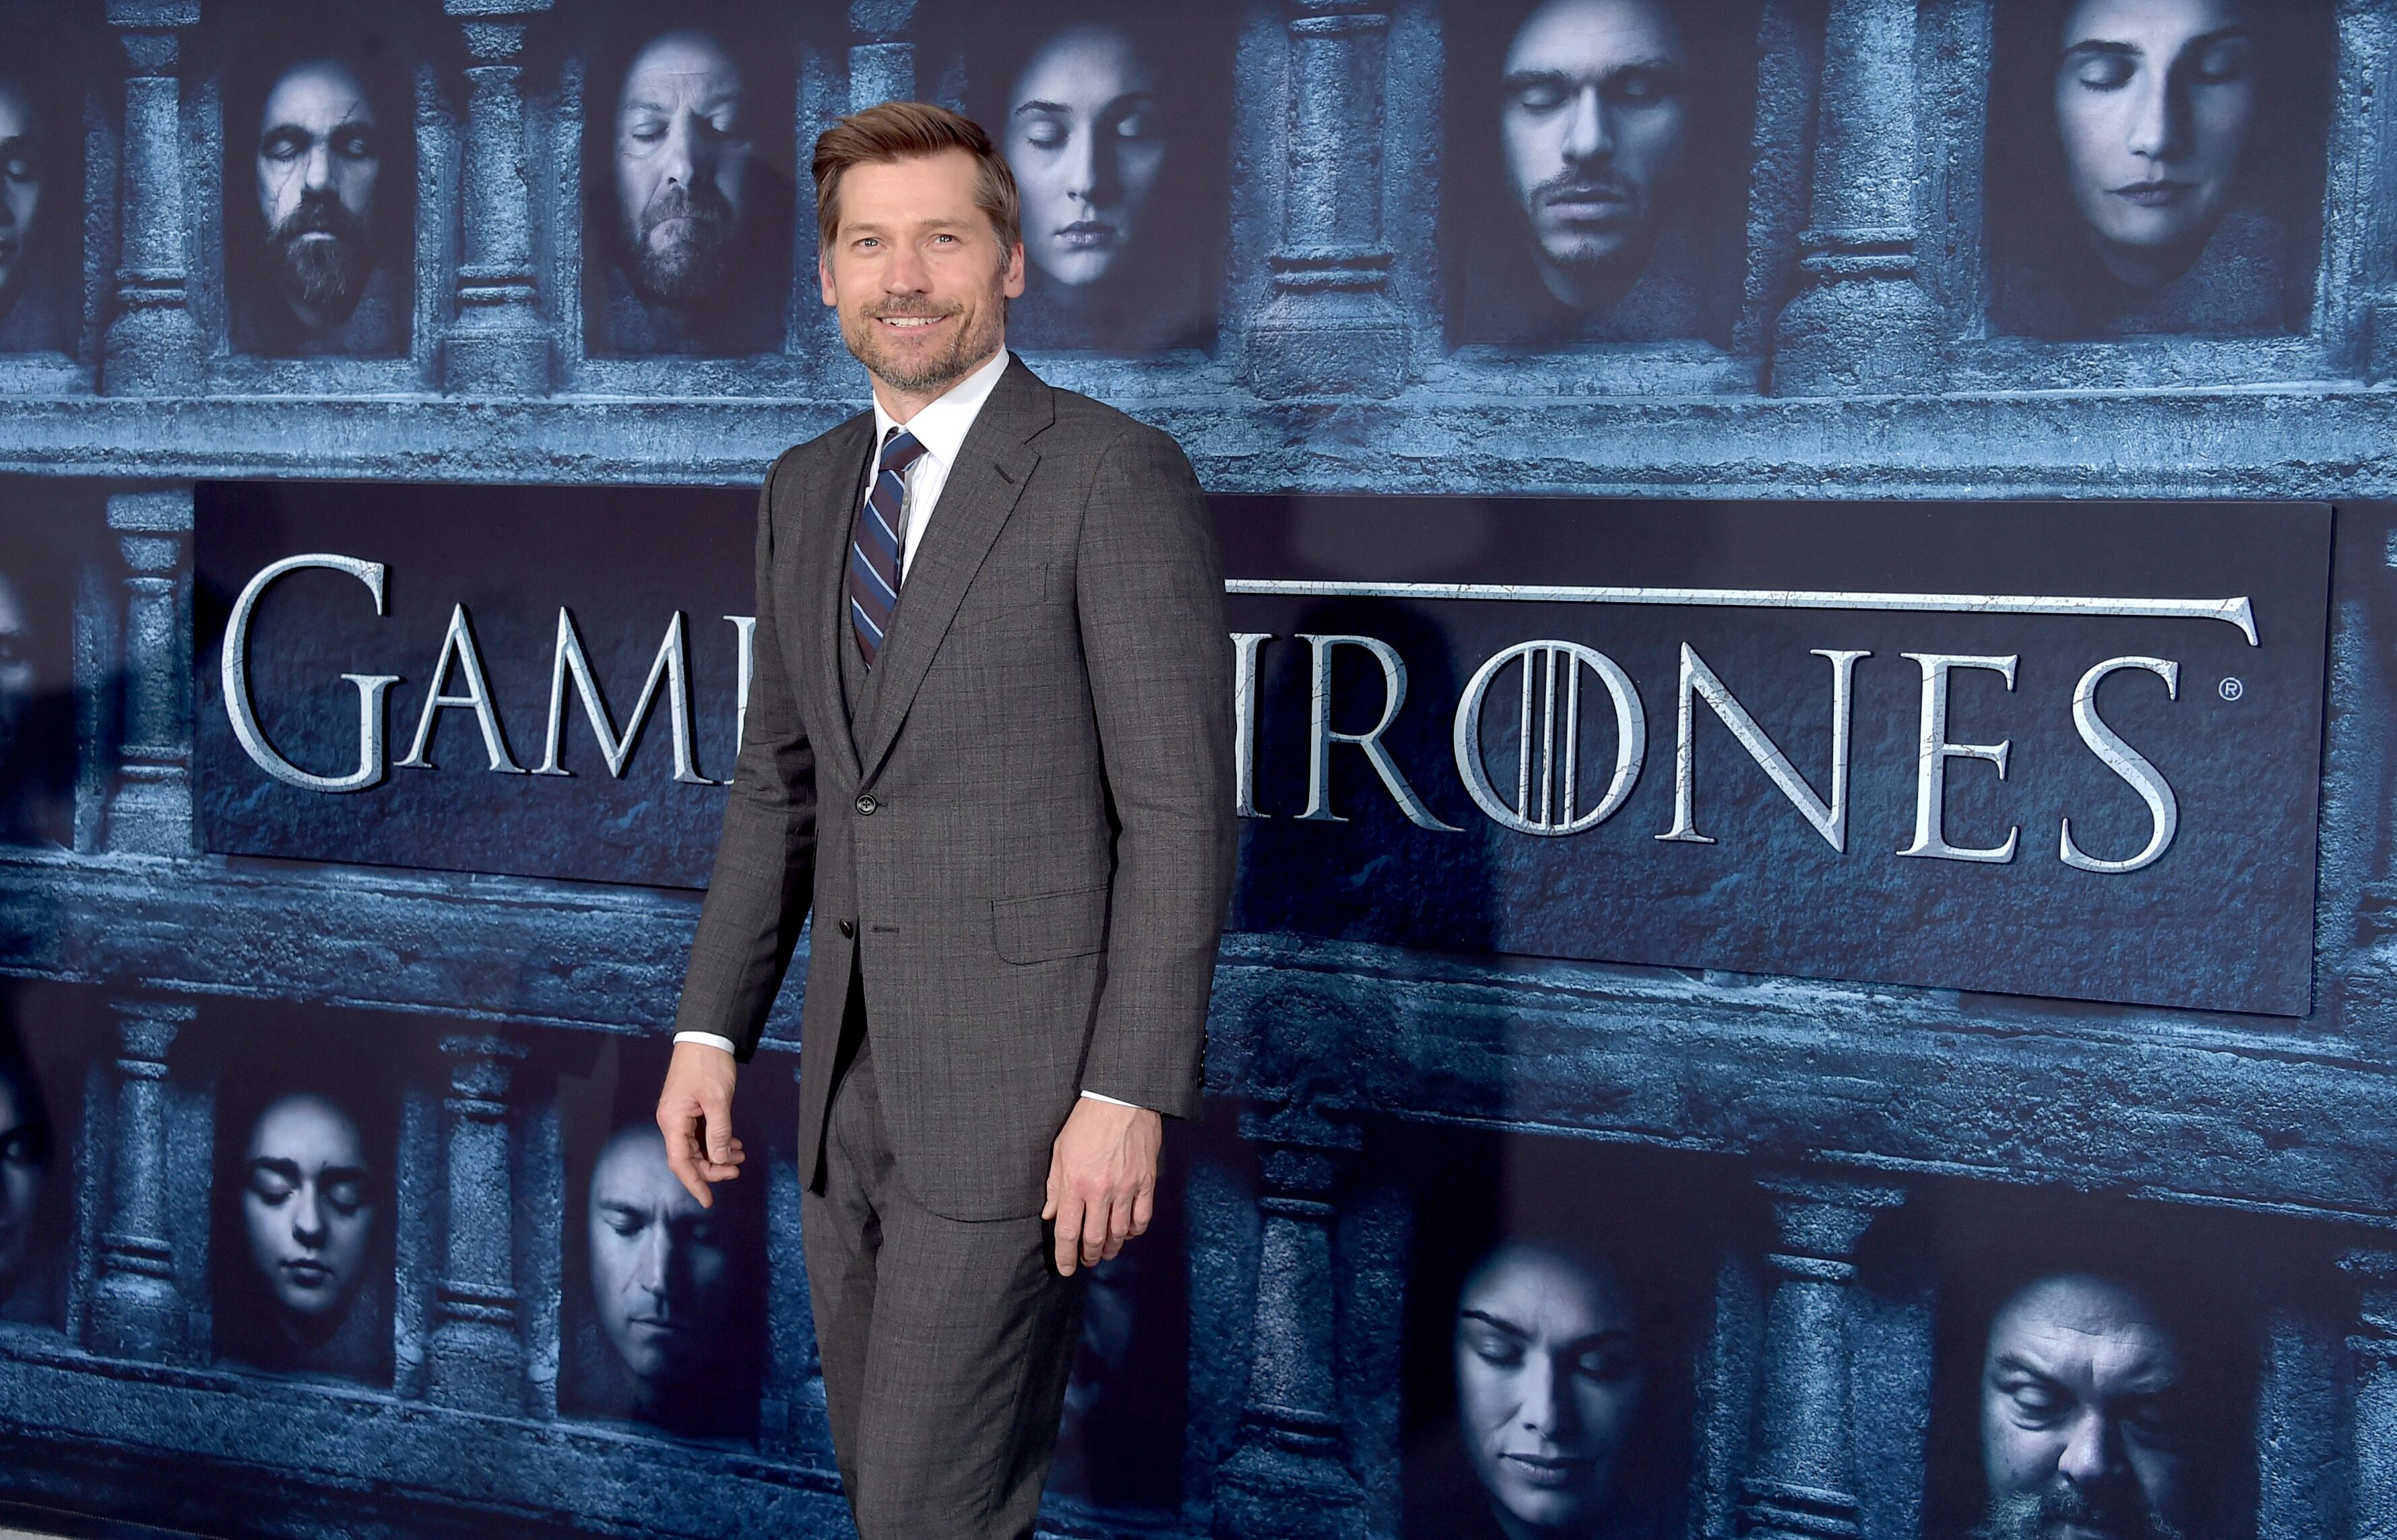 Game of thrones 2016 premiere